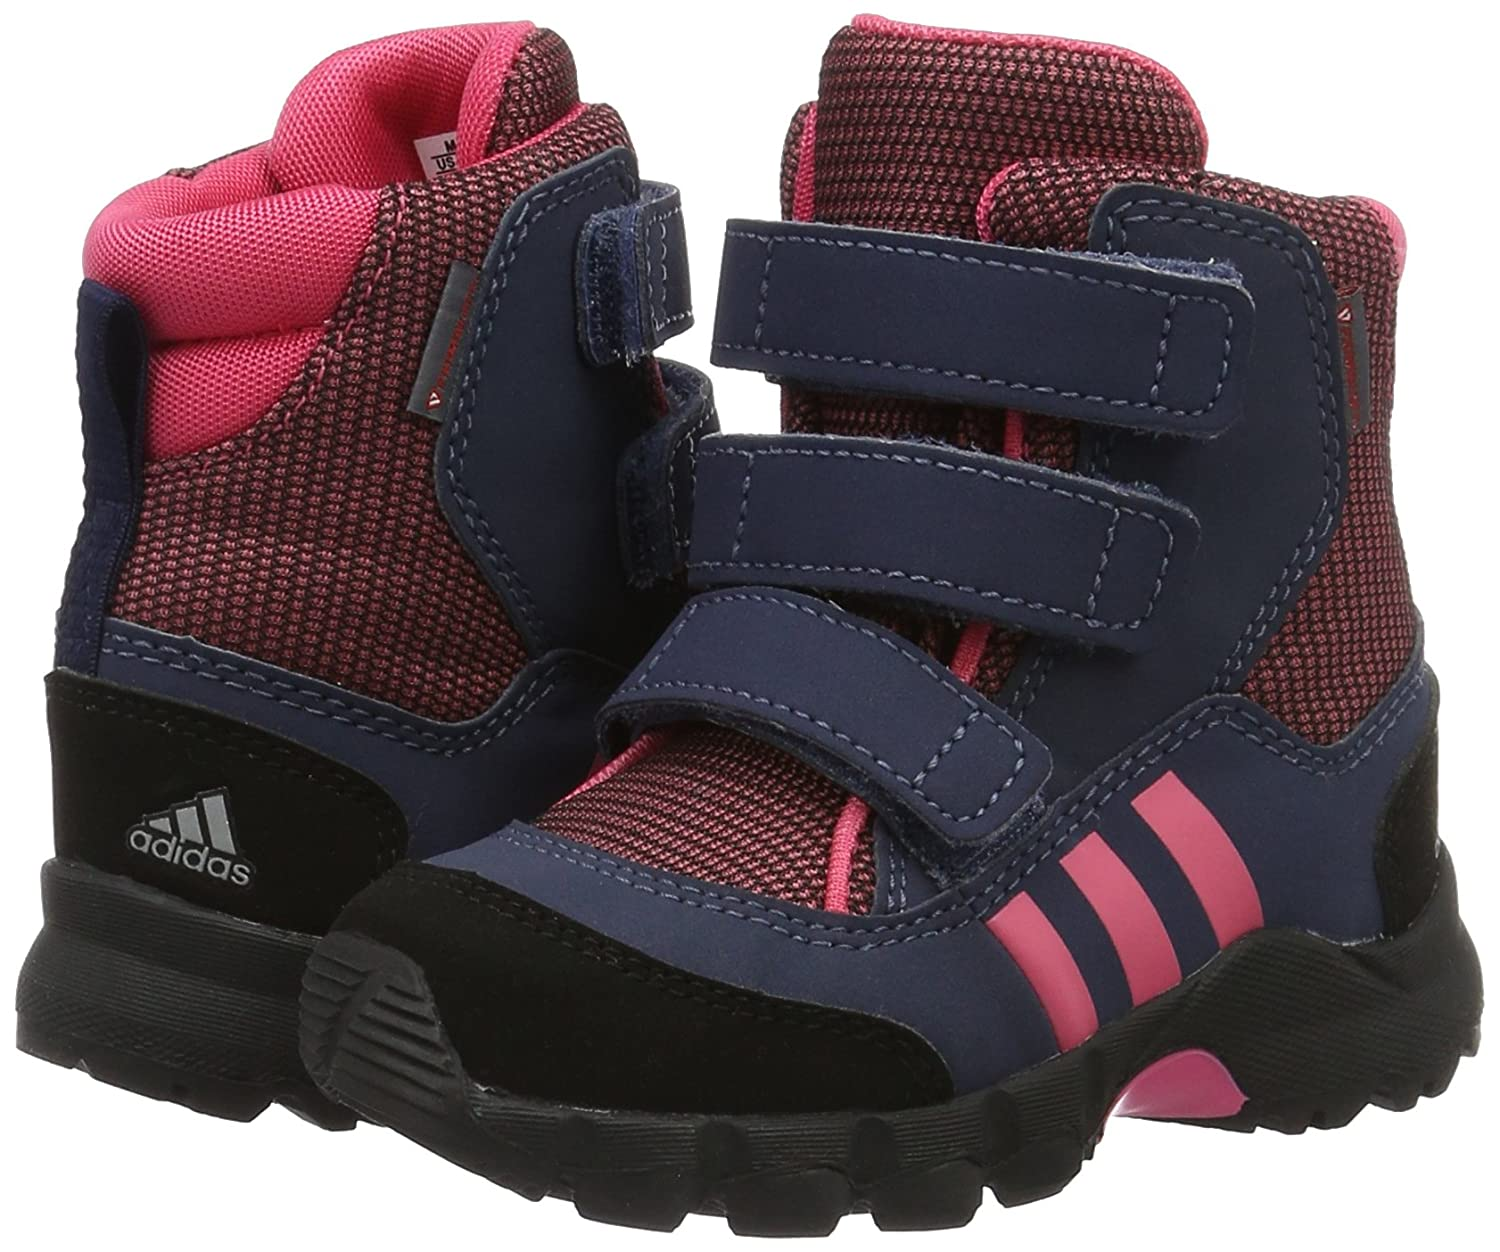 adidas Cw Holtanna Snow Cf I, Unisex Babies' Low Top